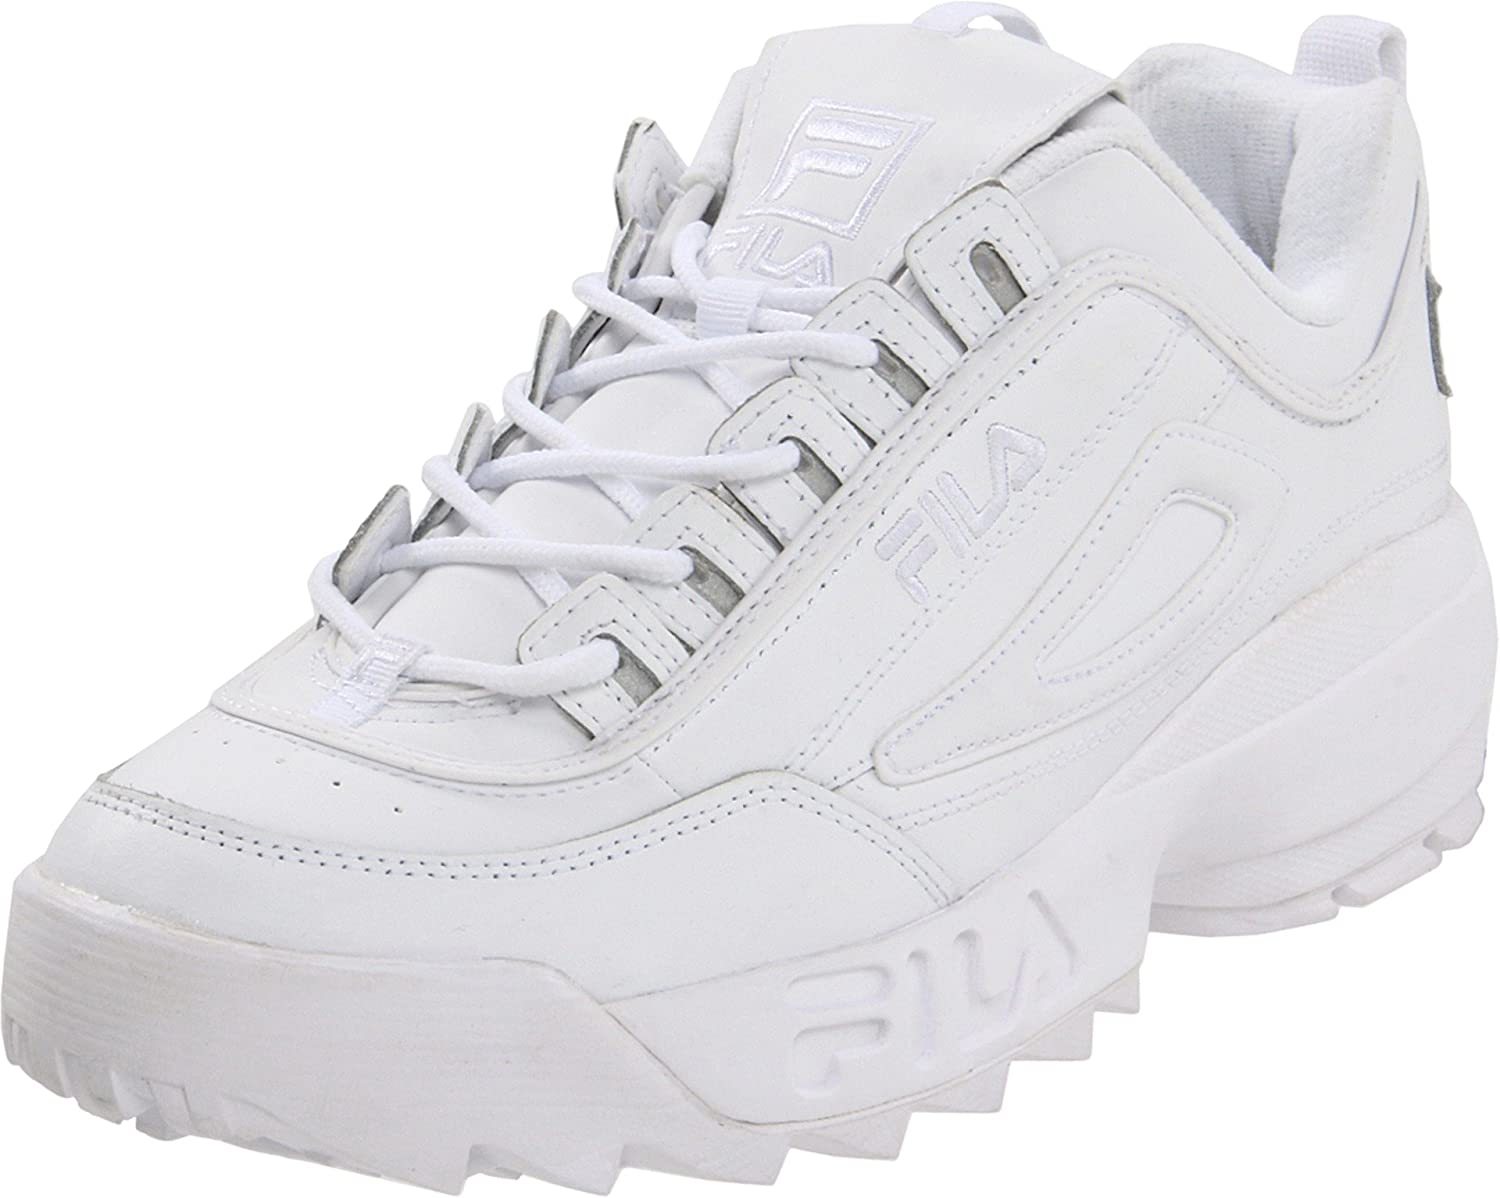 Fila Men's Strada Disruptor, bianca, 9.5 D-Medium